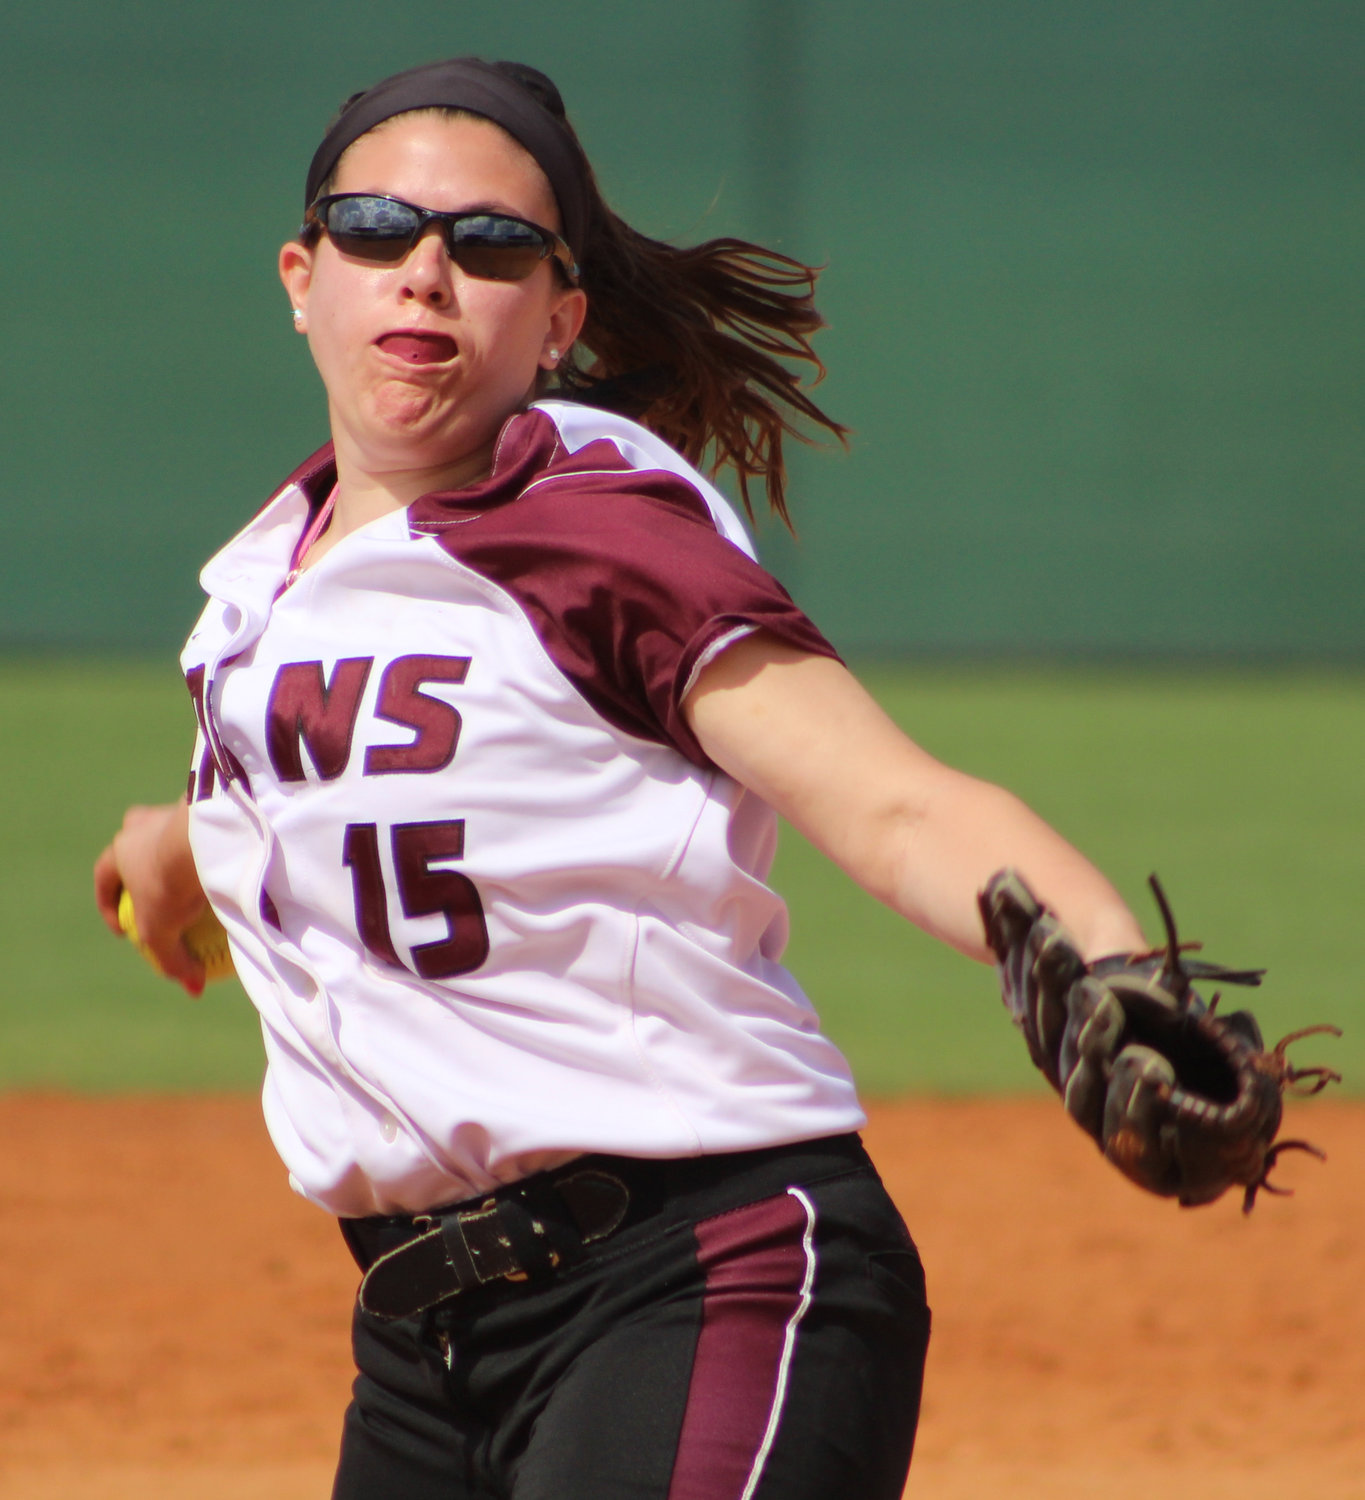 Molloy senior Jenna Turato, a Carey High School grad, won 18 games last year and led the East Coast Conference in innings pitched with 200-plus.